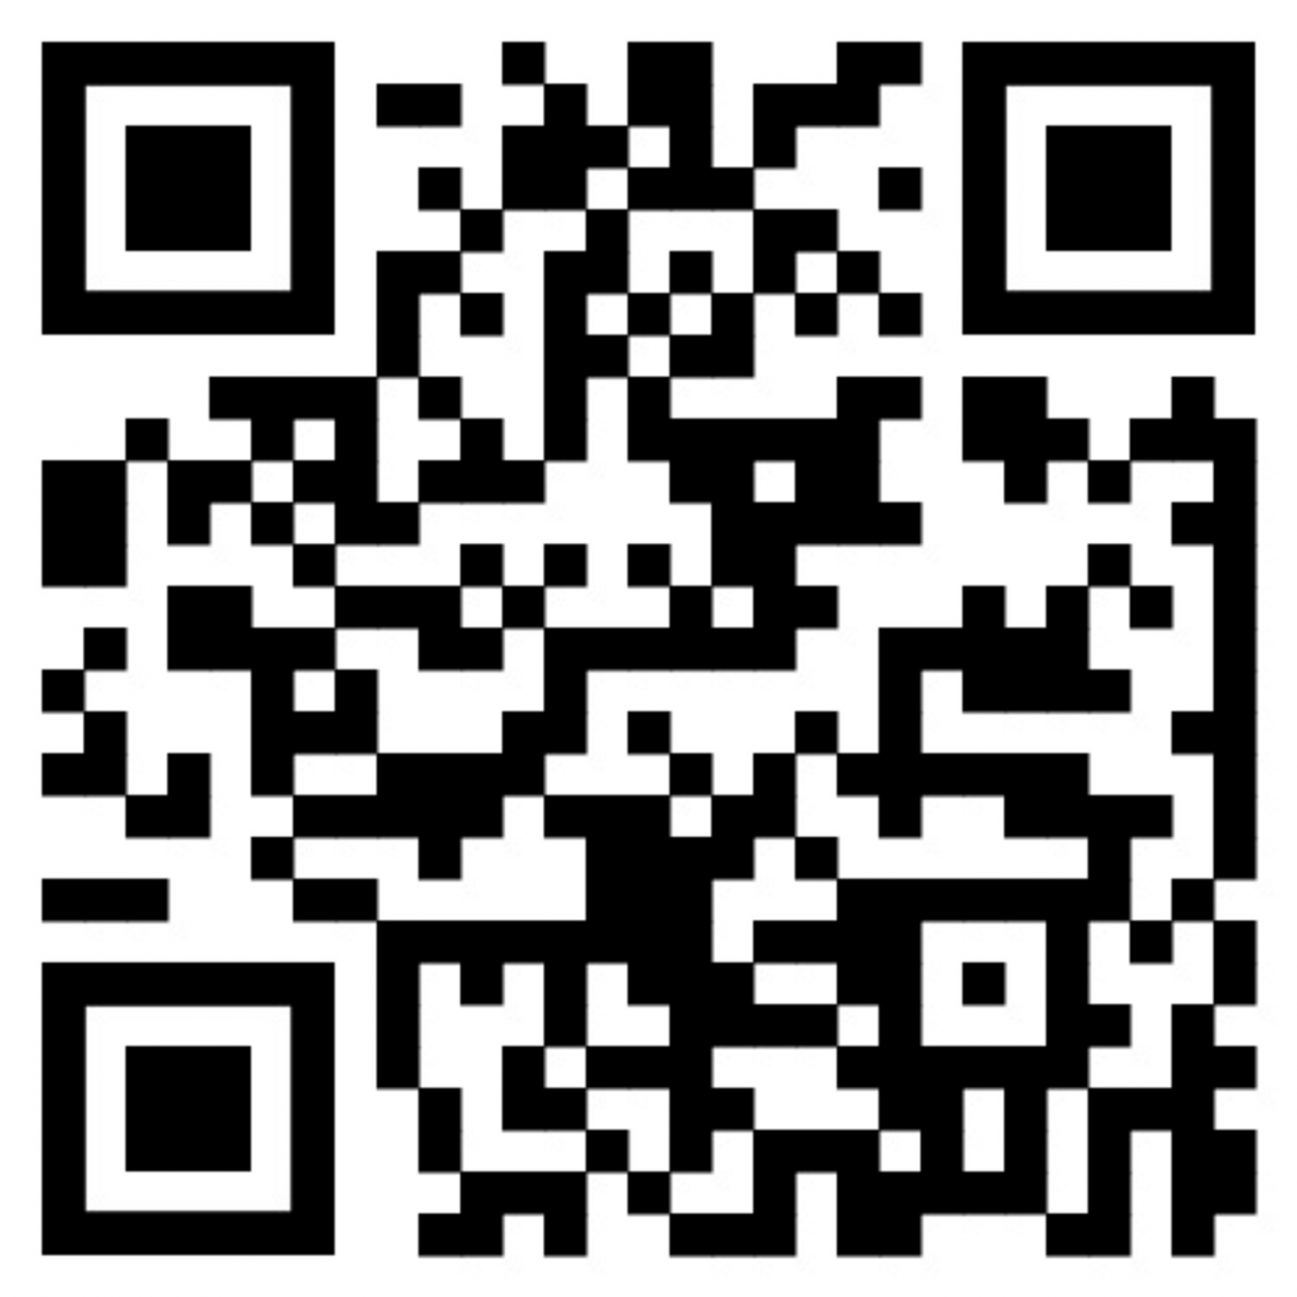 QR Code do Campus Centro